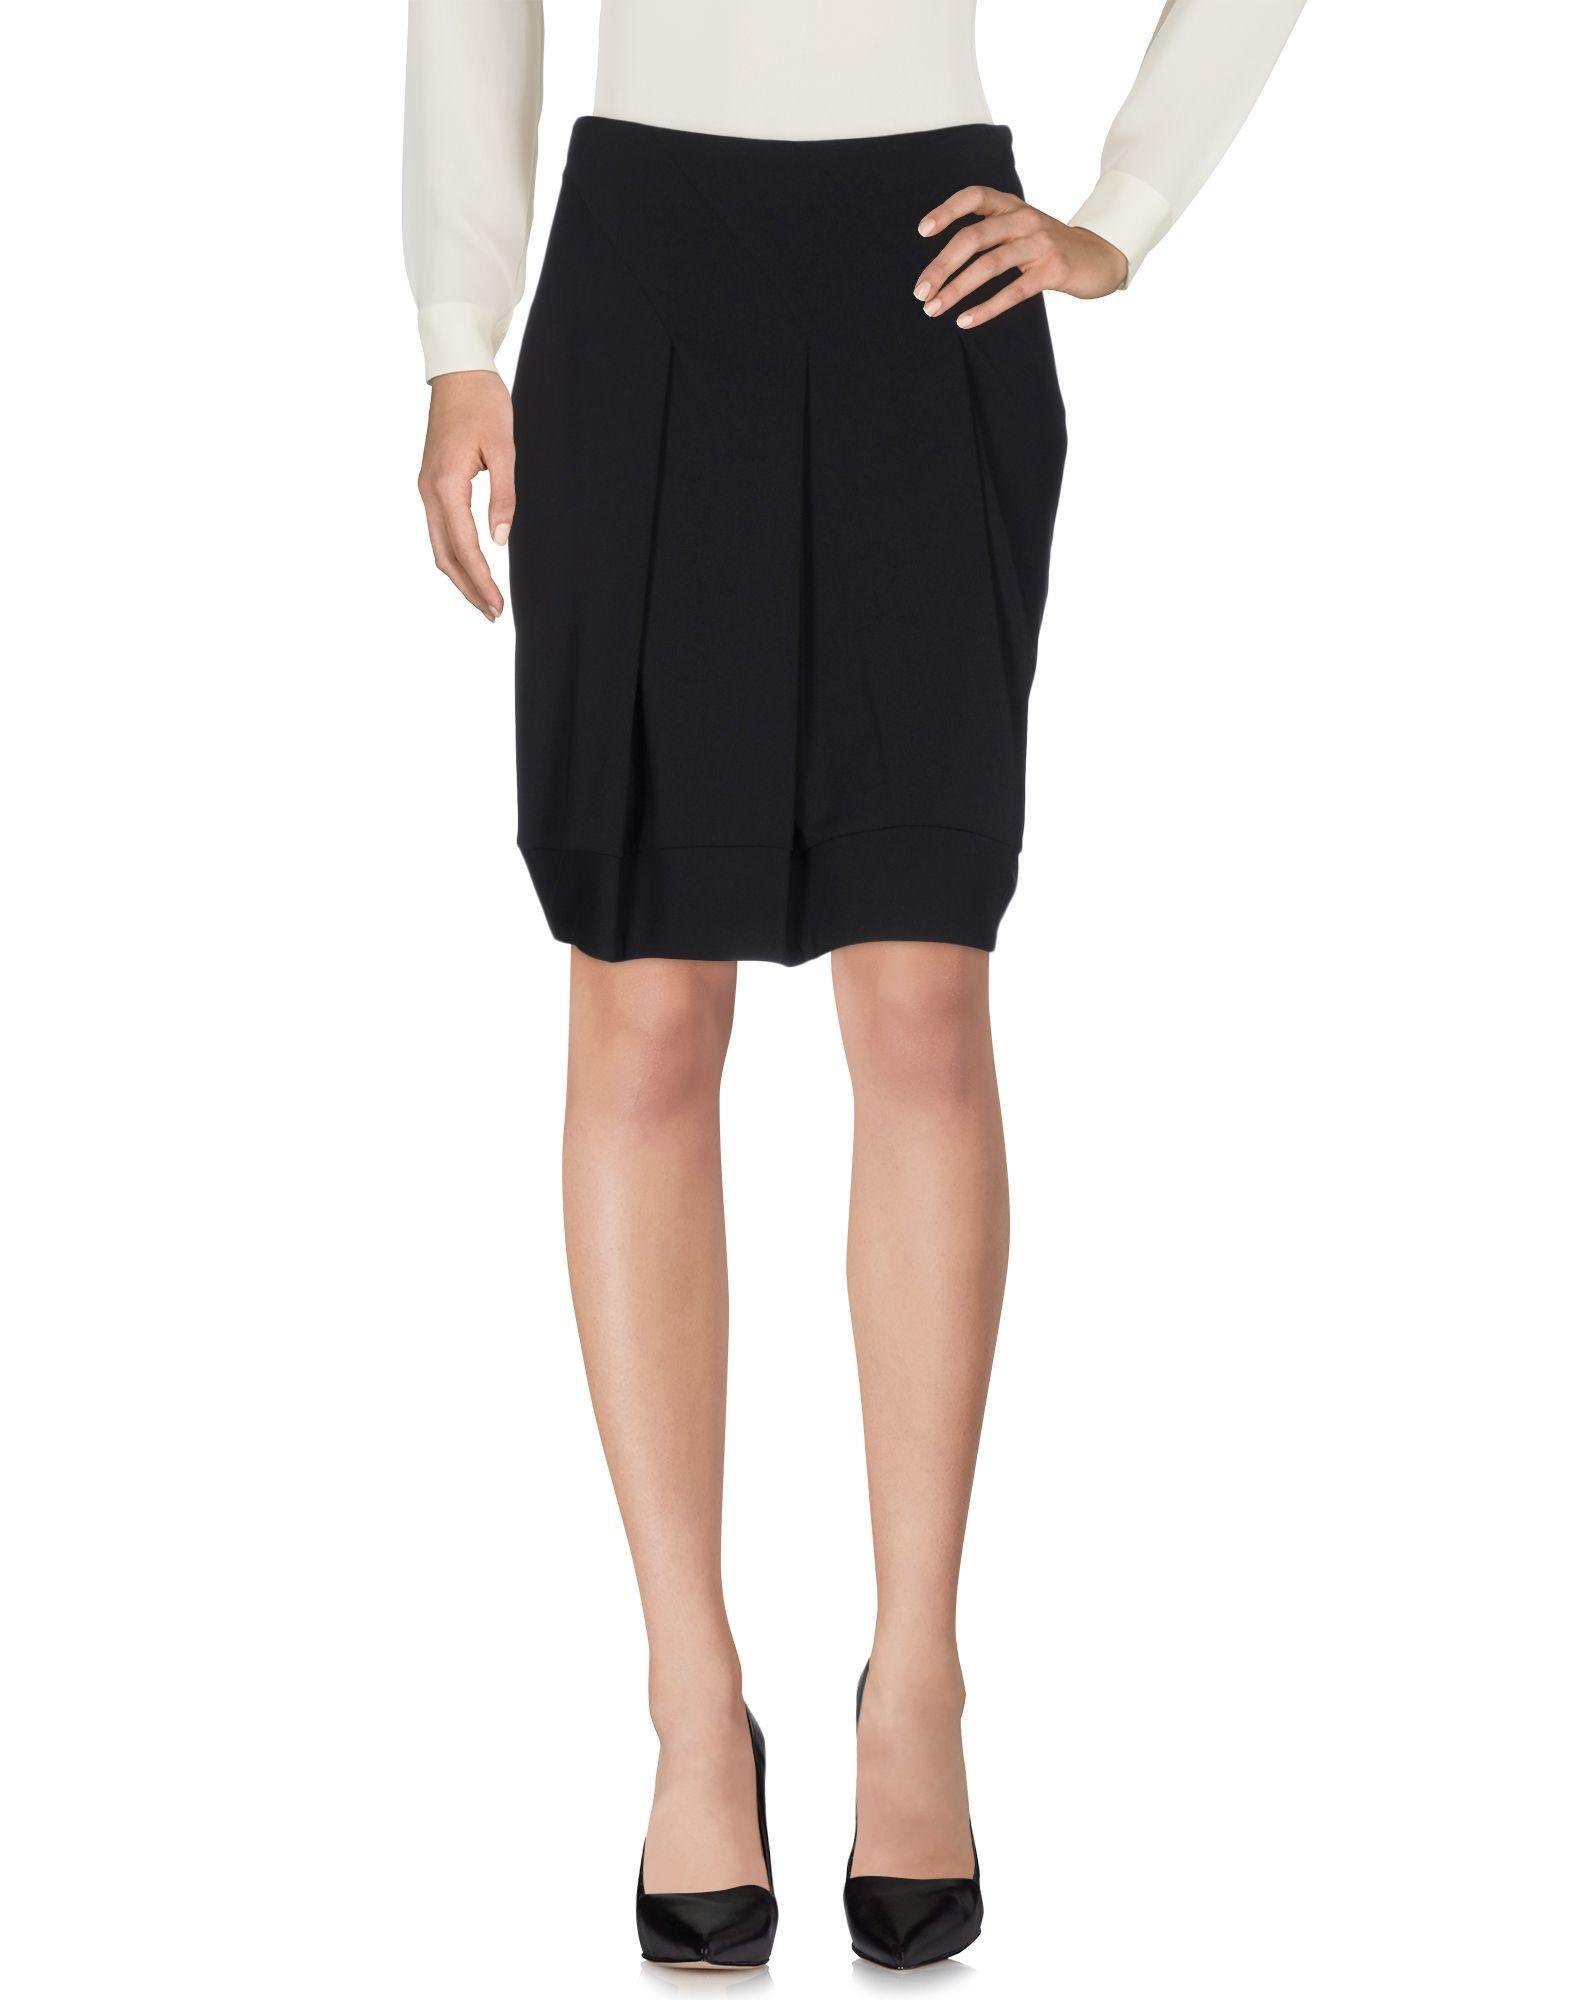 Shop For Online 2018 New SKIRTS - Knee length skirts Didier Parakian Buy Cheap Lowest Price Clearance Wide Range Of pxlV3Ge1s